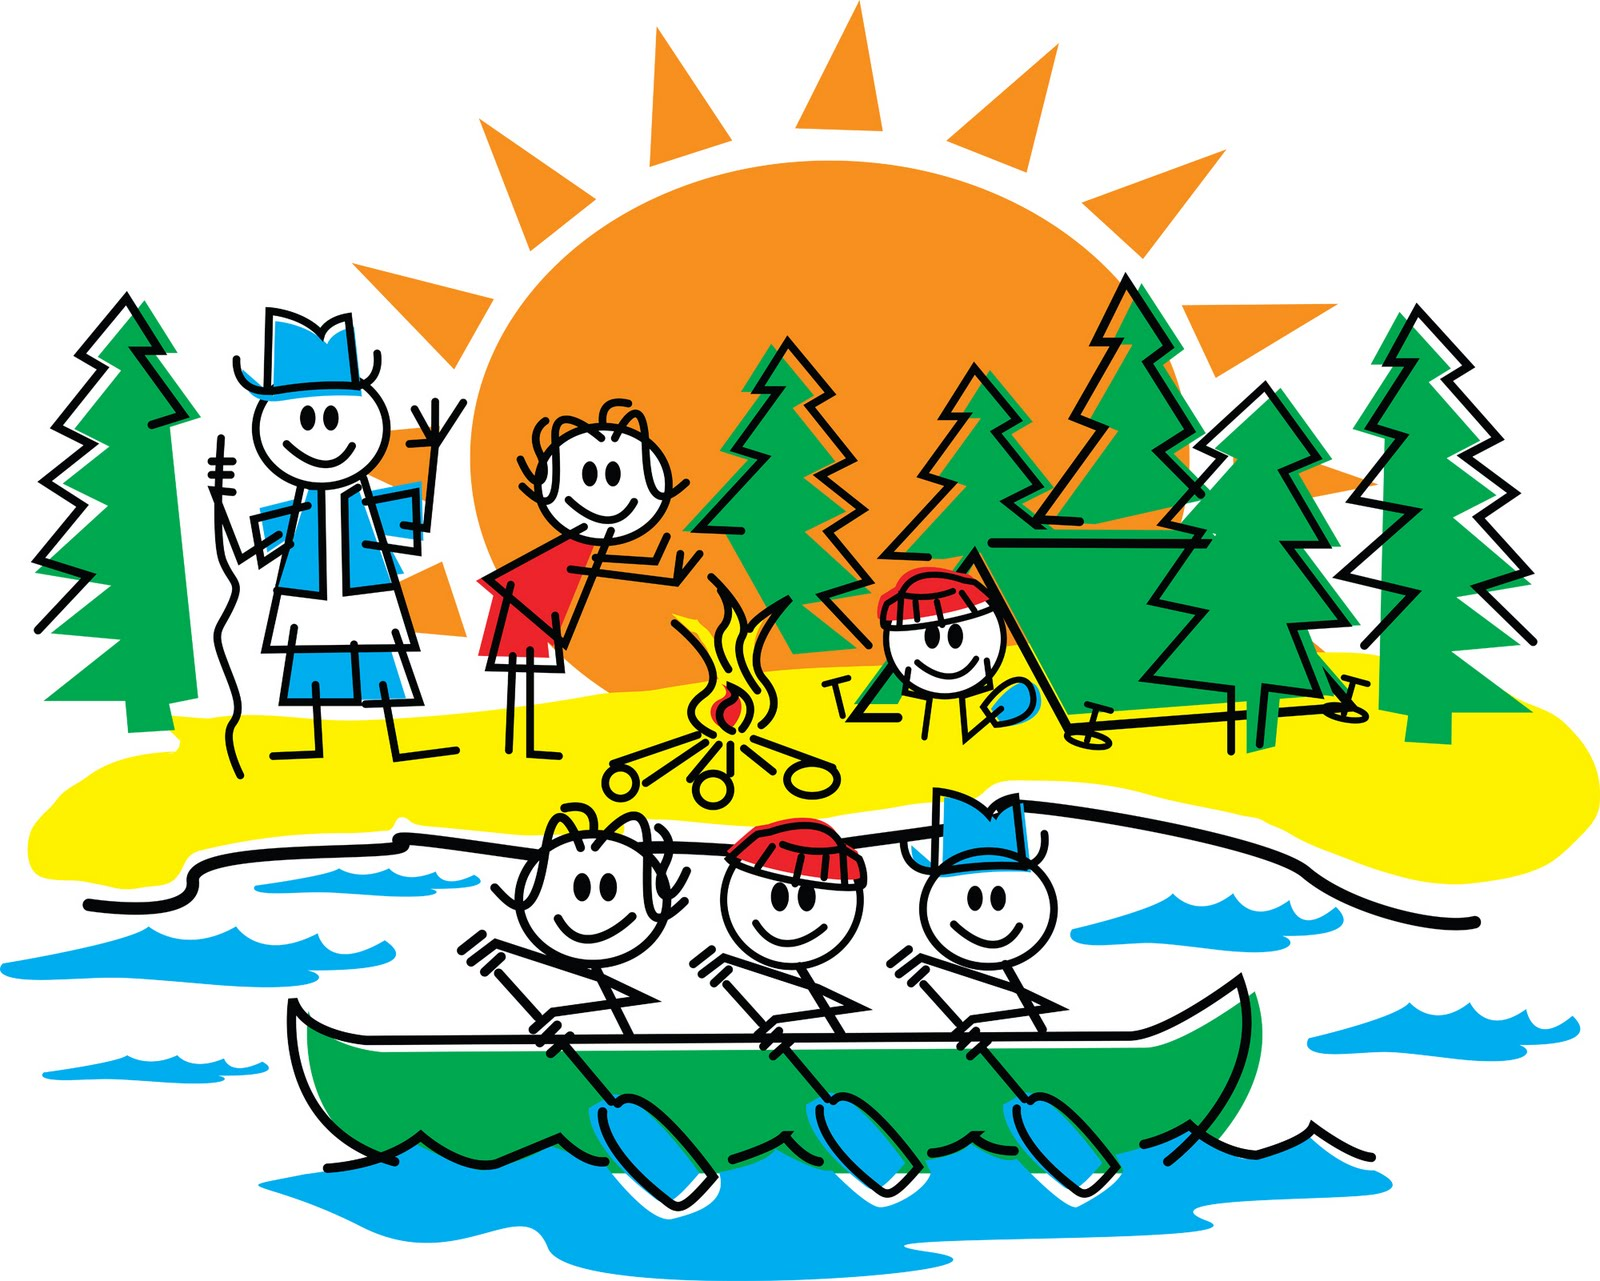 Camp Counselor Cliparts Free Download Clip Art.